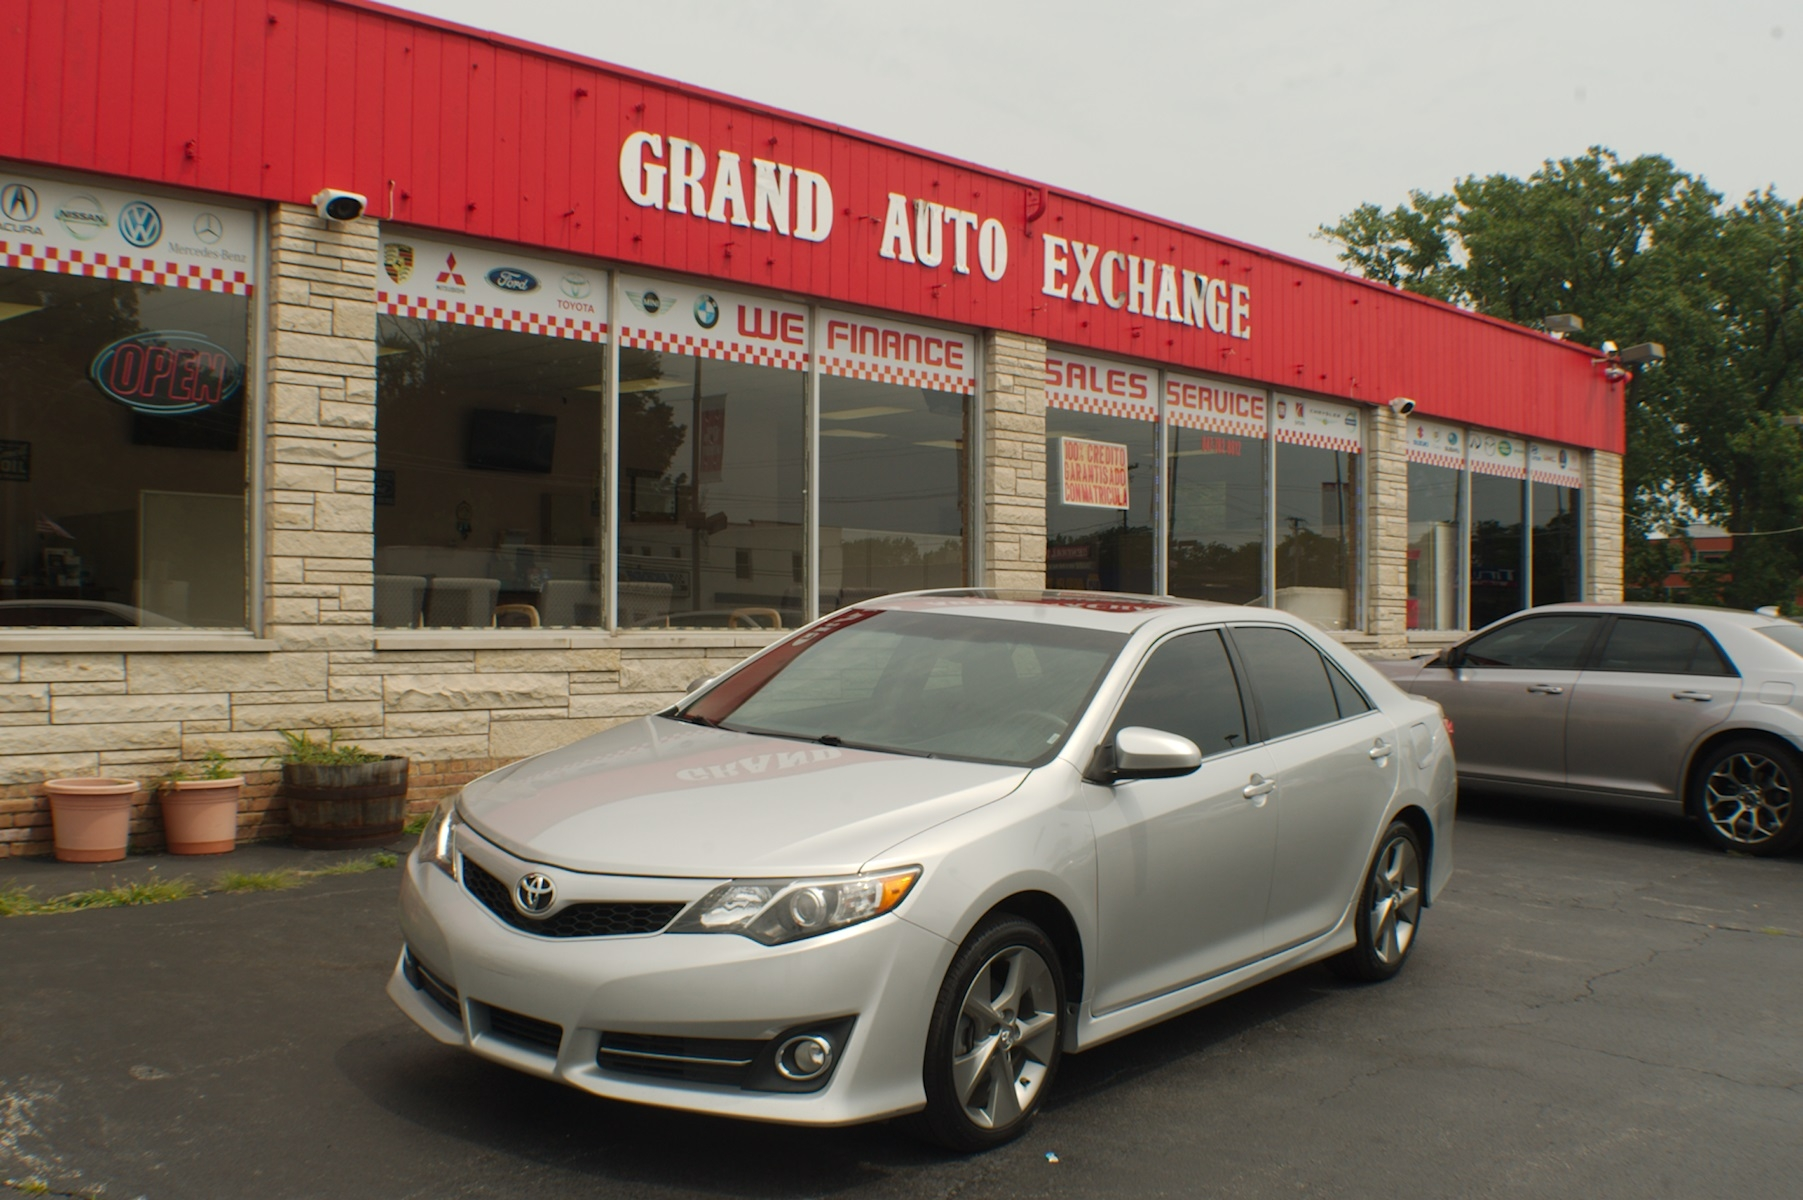 2012 Toyota Camry SE Silver Sedan used Car Sale Antioch Zion Waukegan Lake County Illinois